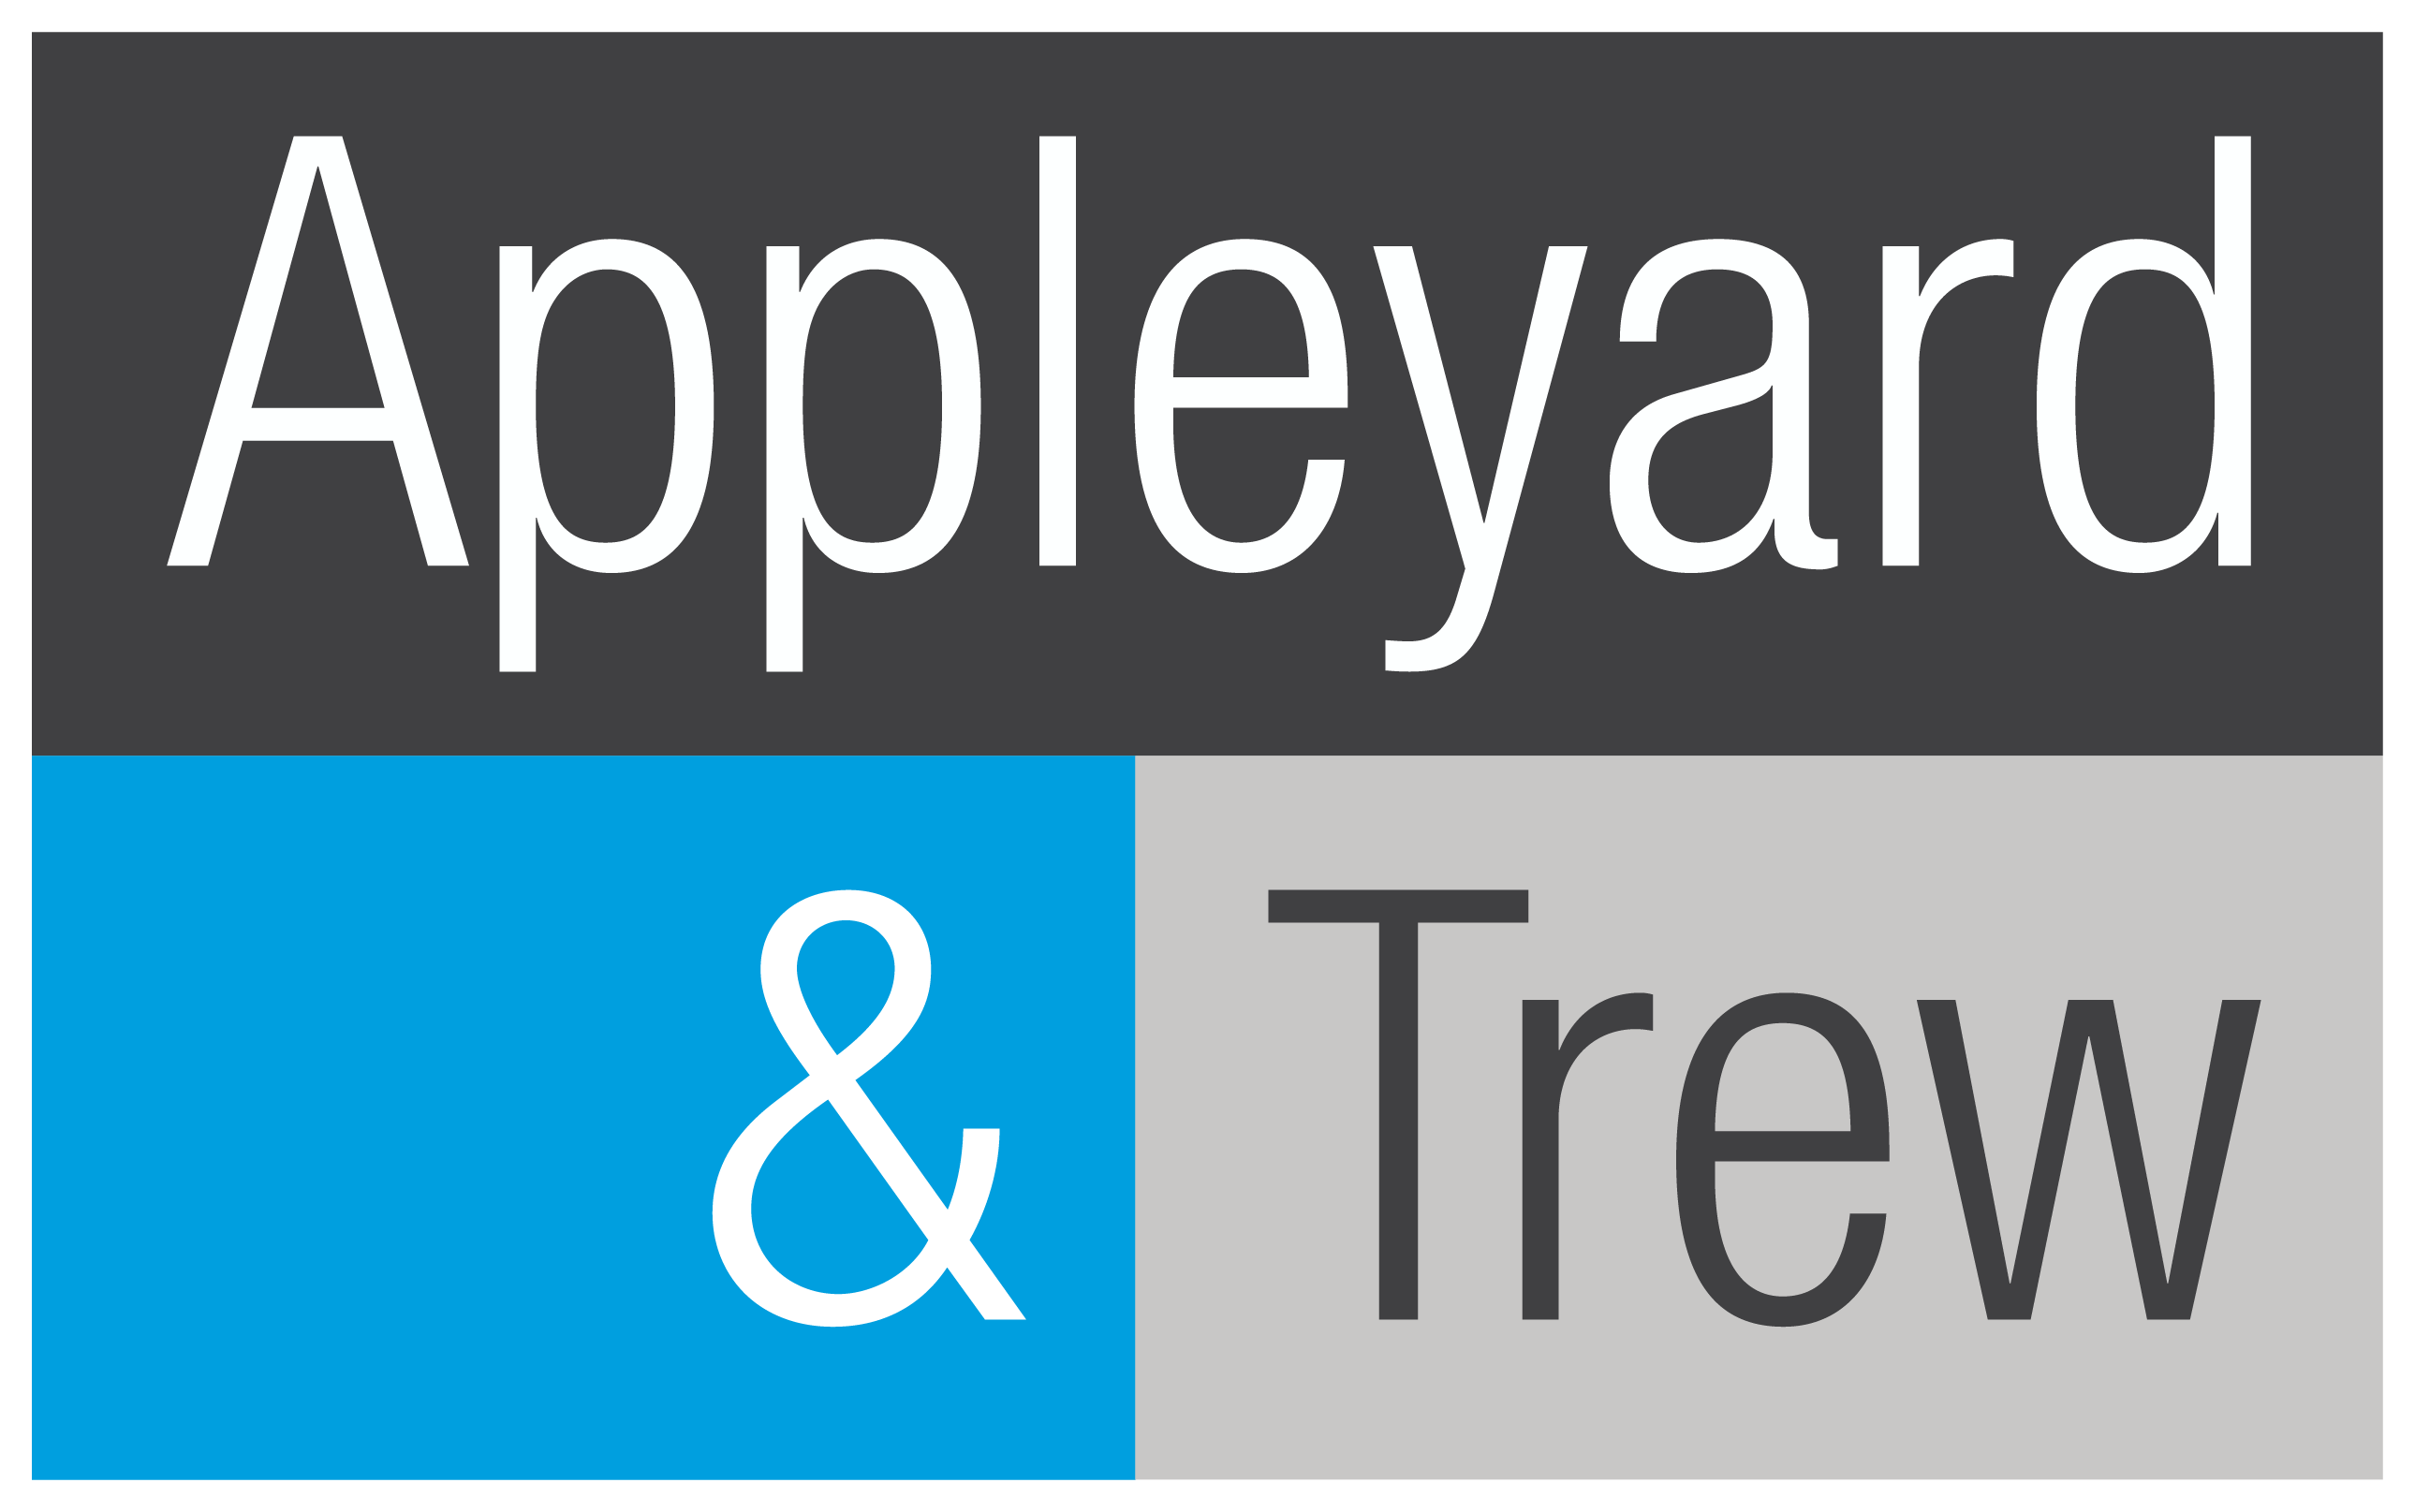 Appleyard and Trew